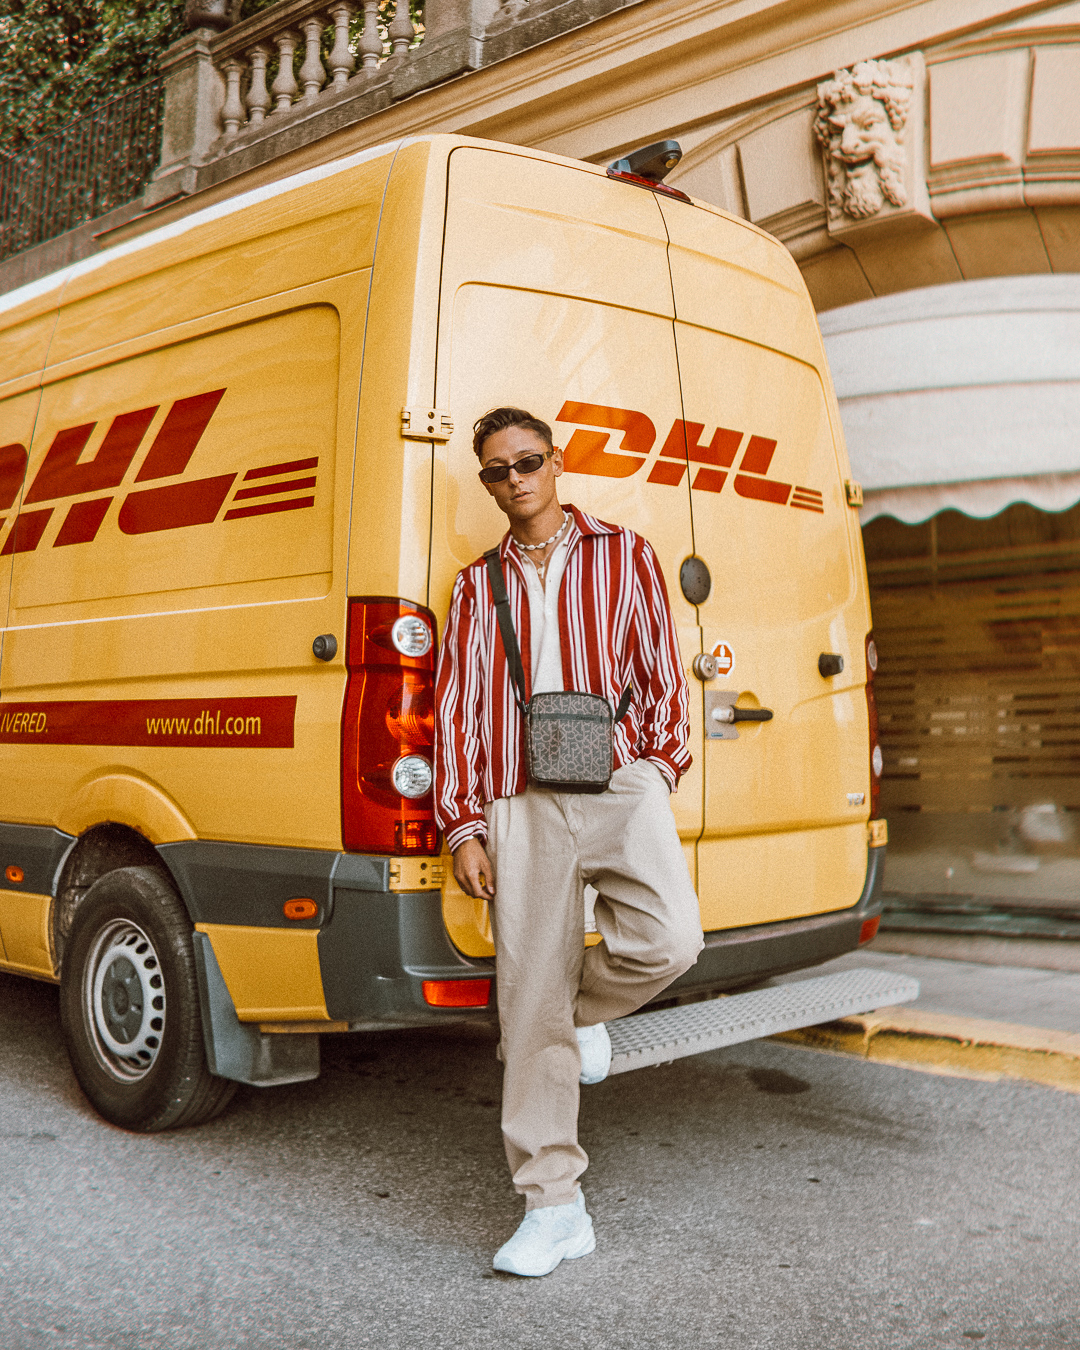 ◎ Found this DHL truck parked outside Fashion week